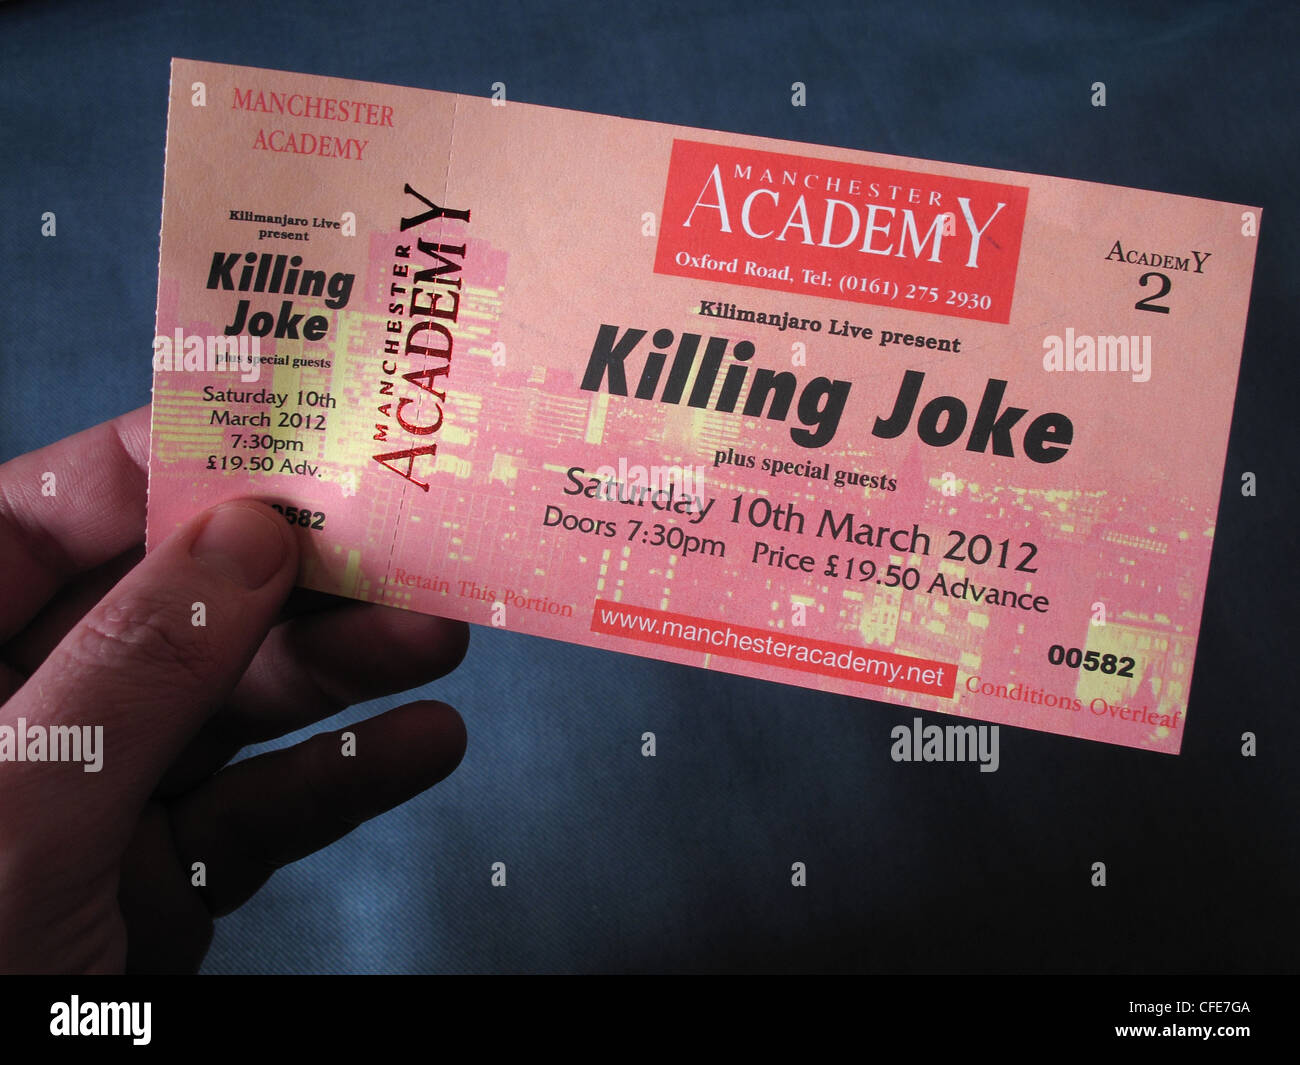 Killing,Joke,concert,ticket,for,Manchester,Academy,10th,March,2012,held,in,an,hand,gotonysmith,historic,gig,live,reunion,re-union,re,union,standing,seated,venue,gig,cartel,O2,stalls,Greater,Uni,Academy,Roadhouse,Night,and,Day,&,Ruby,lounge,high,price,prices,commission,Ticketline,Classic,1980's,1980s,band,gotonysmith,Buy Pictures of,Buy Images Of